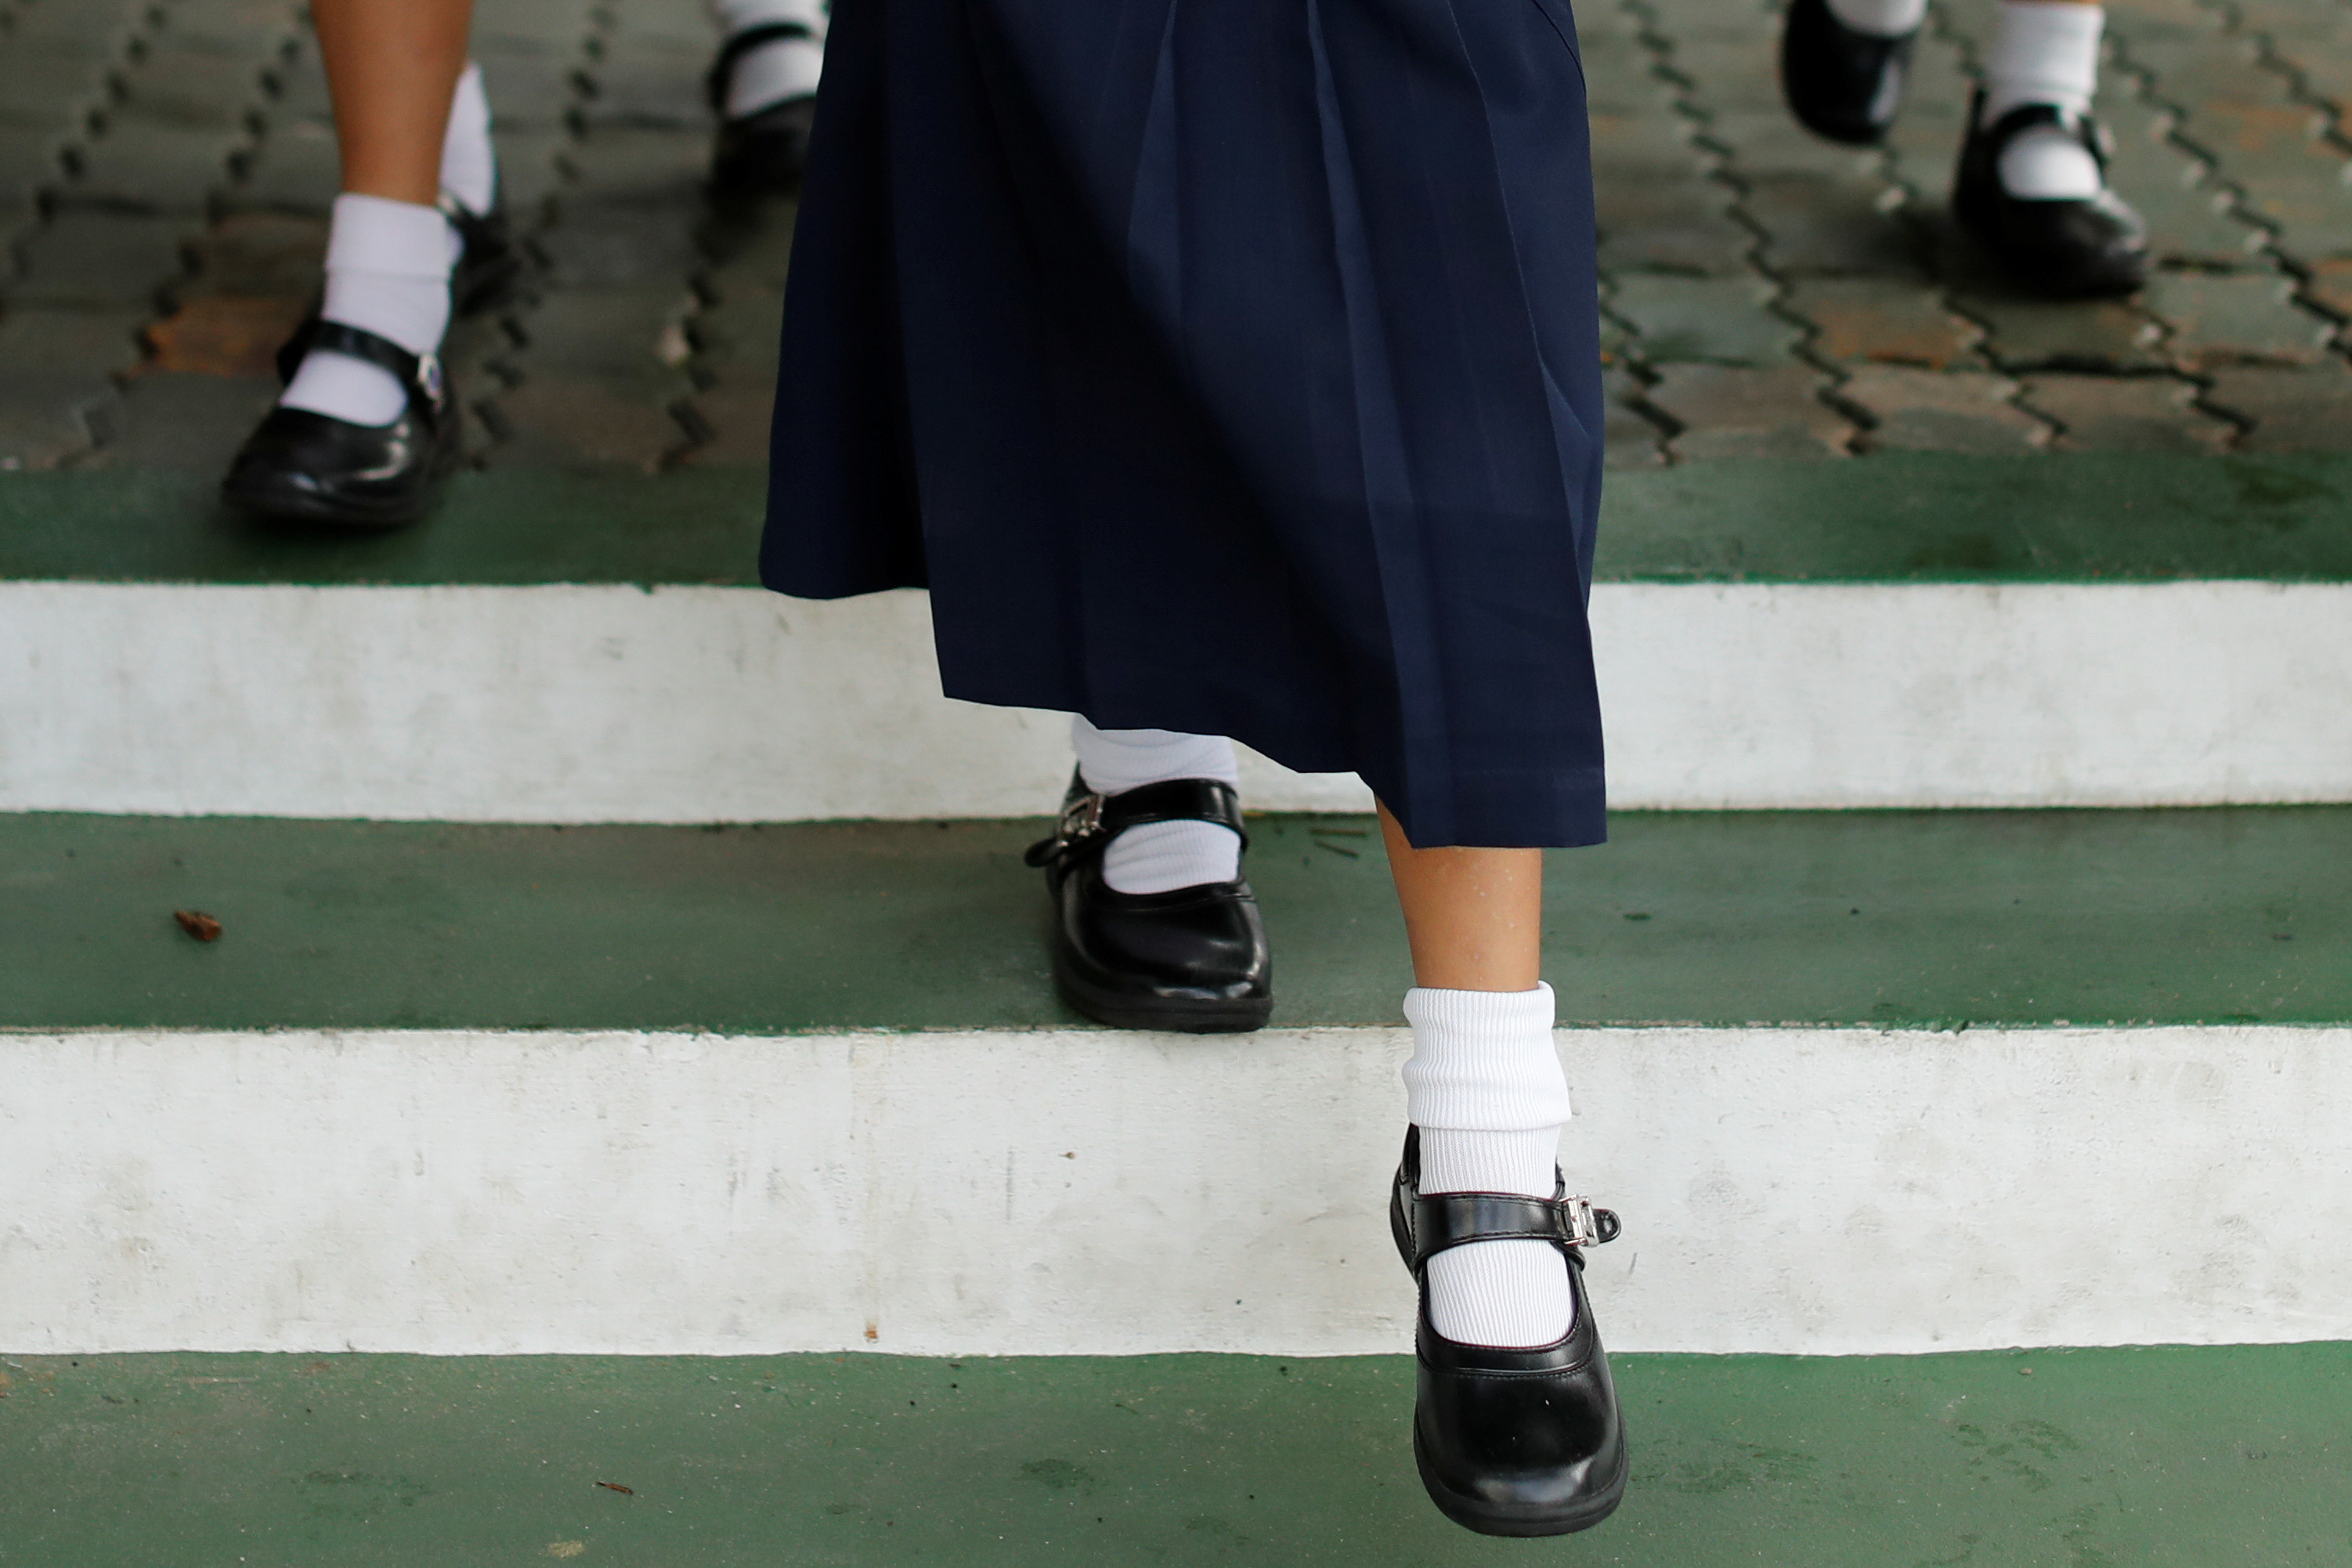 Thai girls walk inside a school wearing school uniforms that are mandatory in the country, in Bangkok, Thailand September 15, 2020. Picture taken September 15, 2020. REUTERS/Jorge Silva - RC218J9G3IFJ